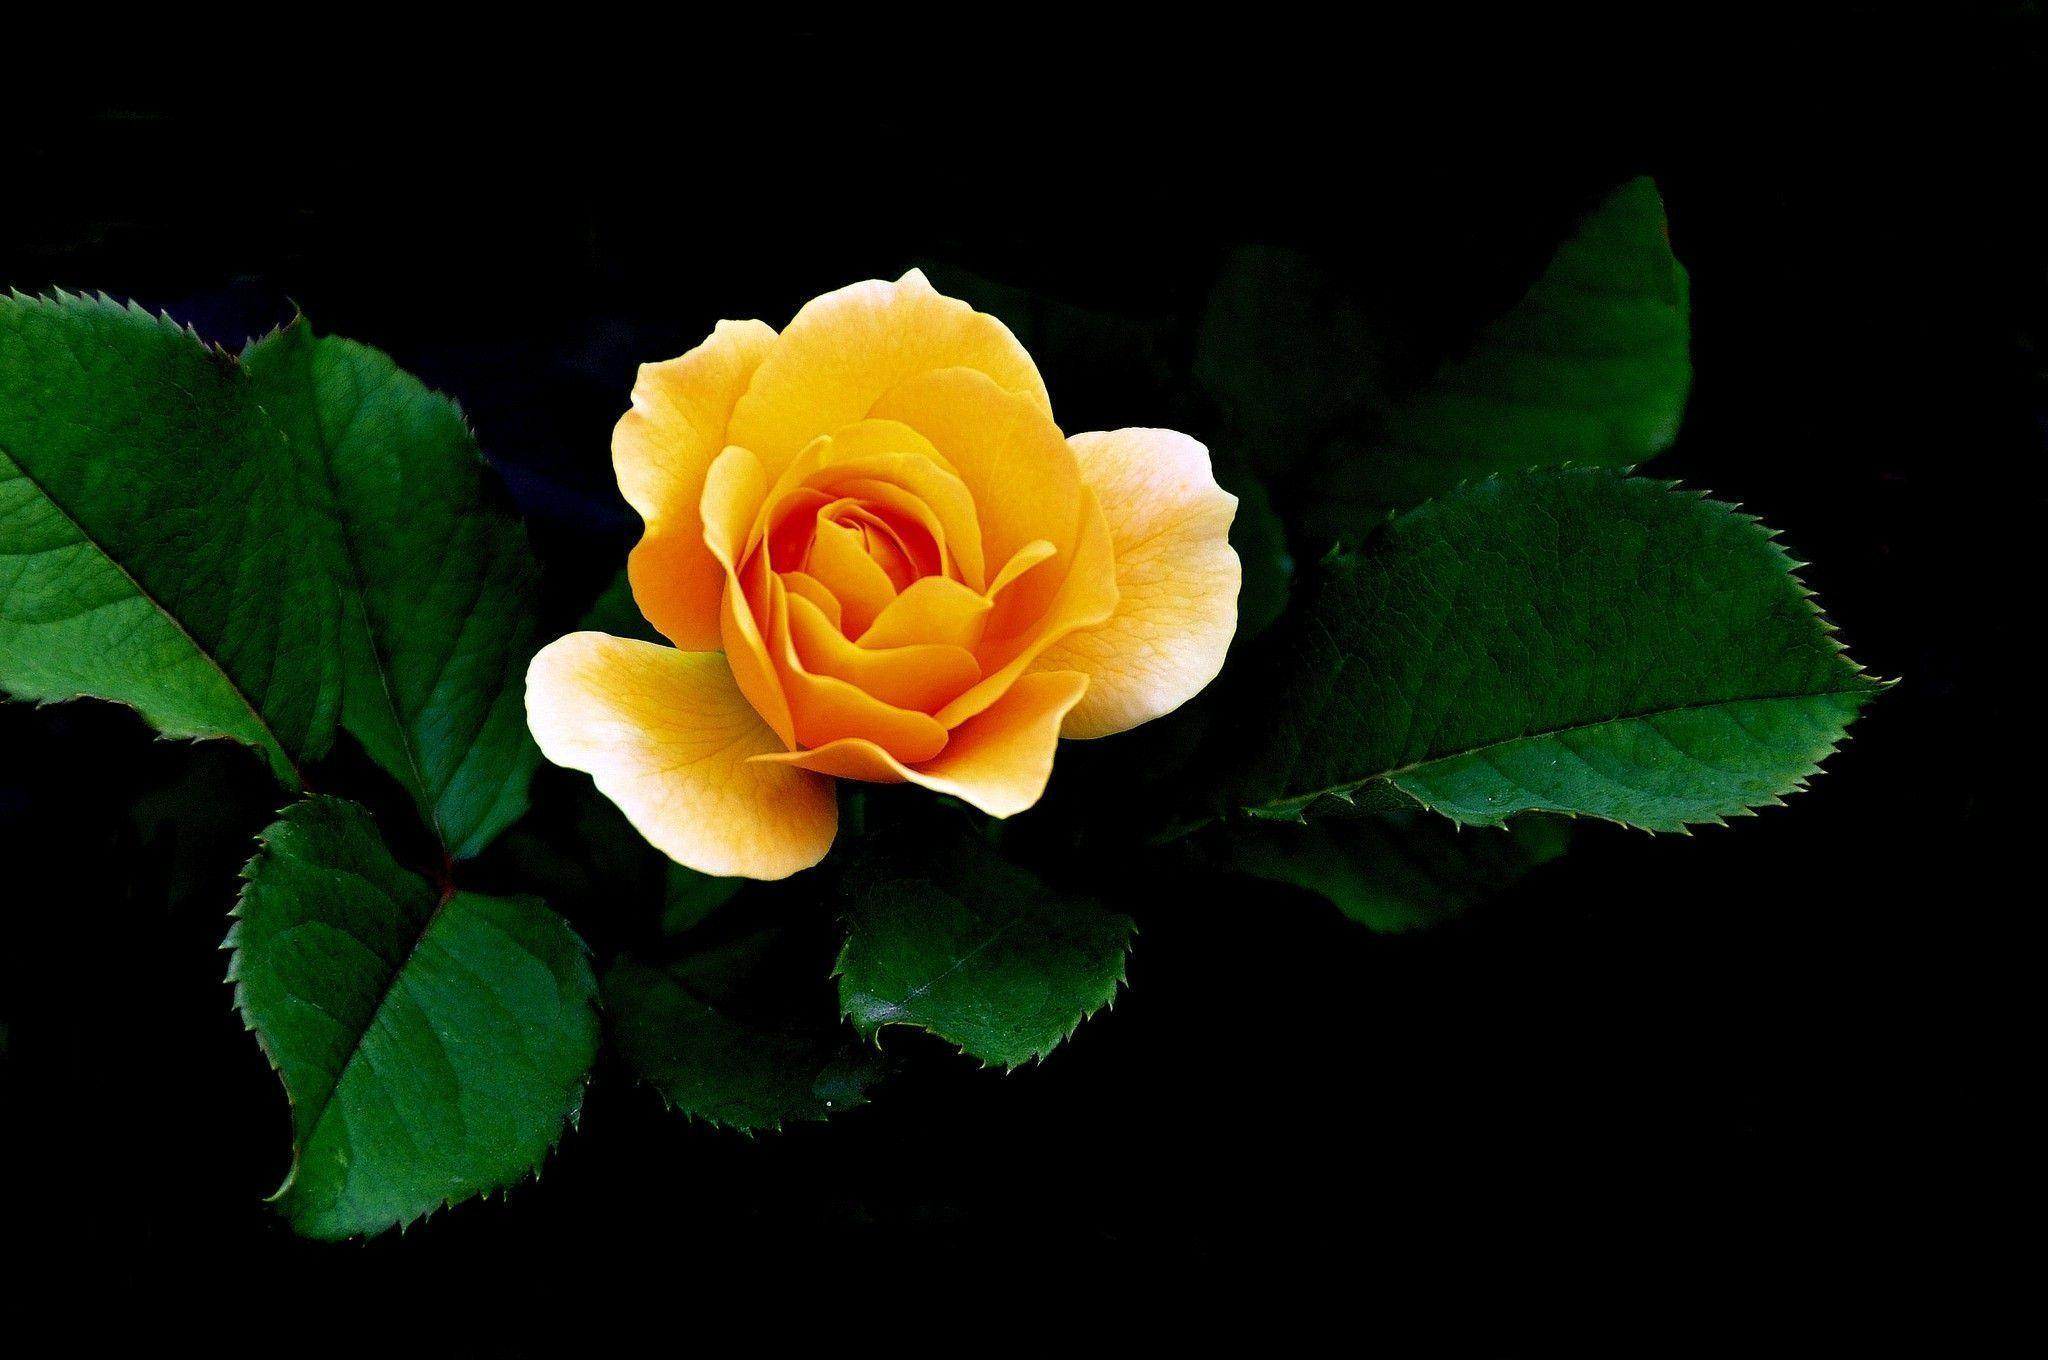 Yellow rose wallpapers wallpaper cave - Yellow rose images hd ...